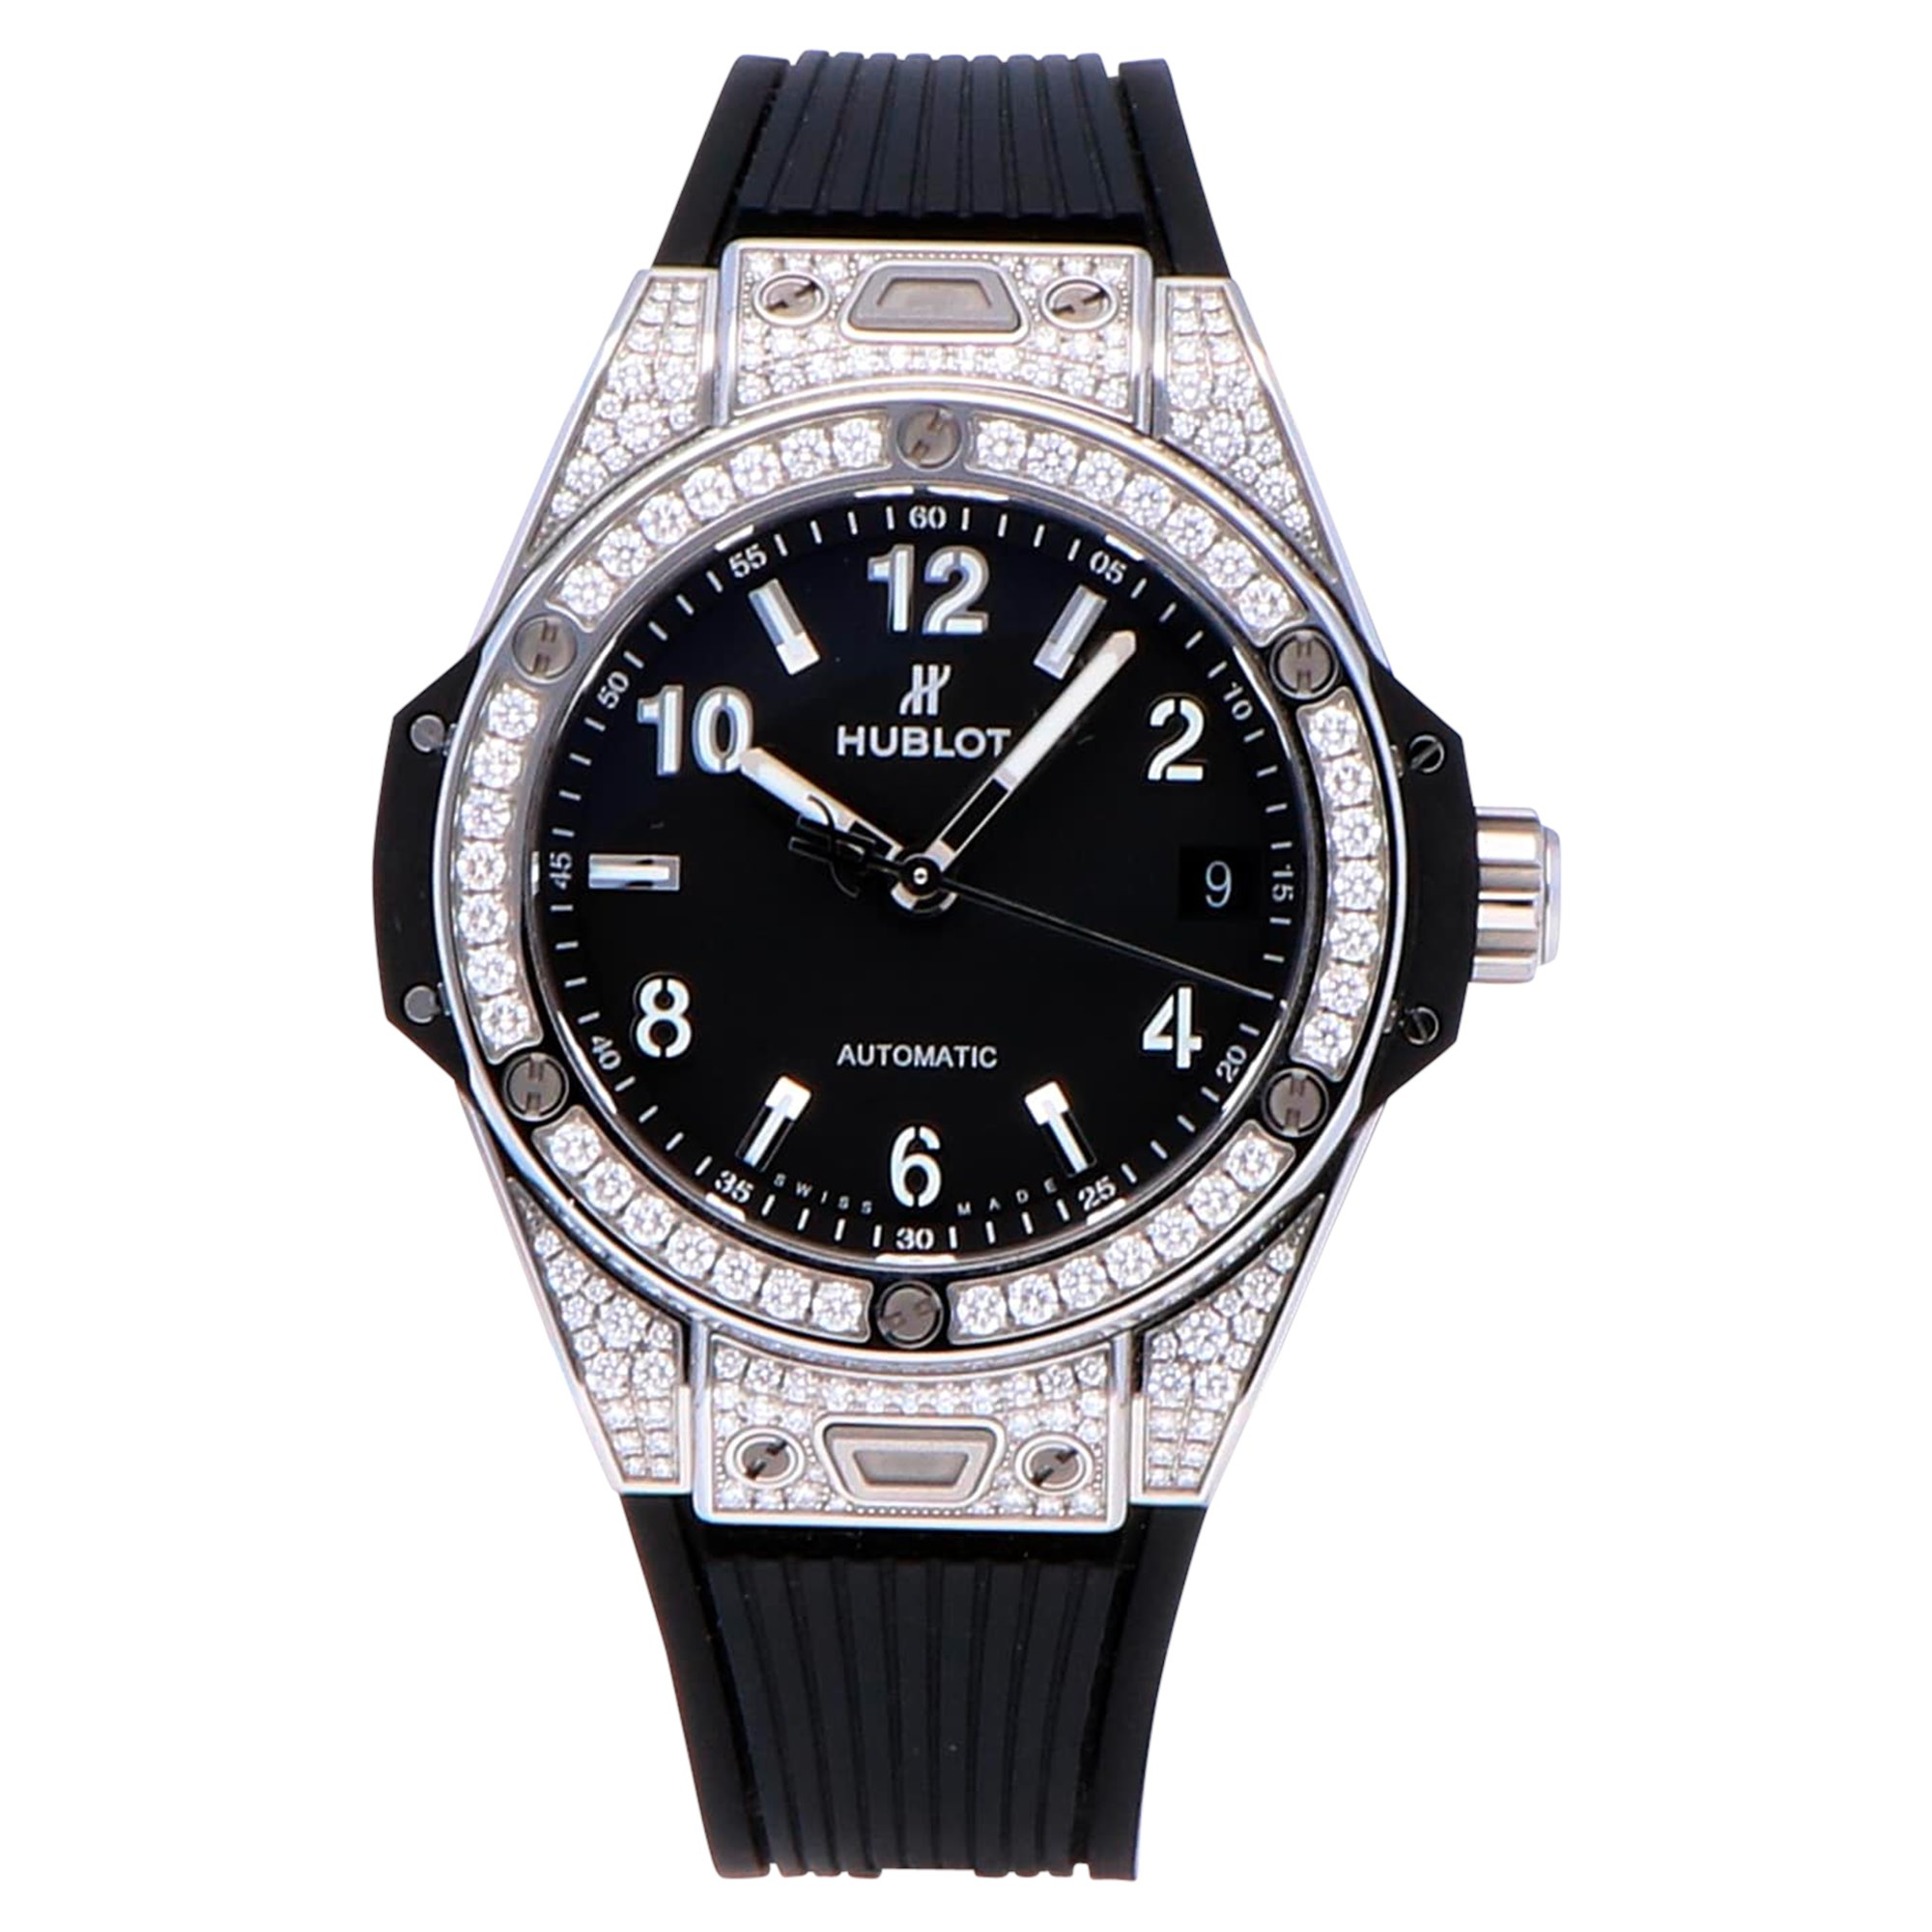 Hublot Big Bang Stainless Steel 465.SX.1170.RX.1604